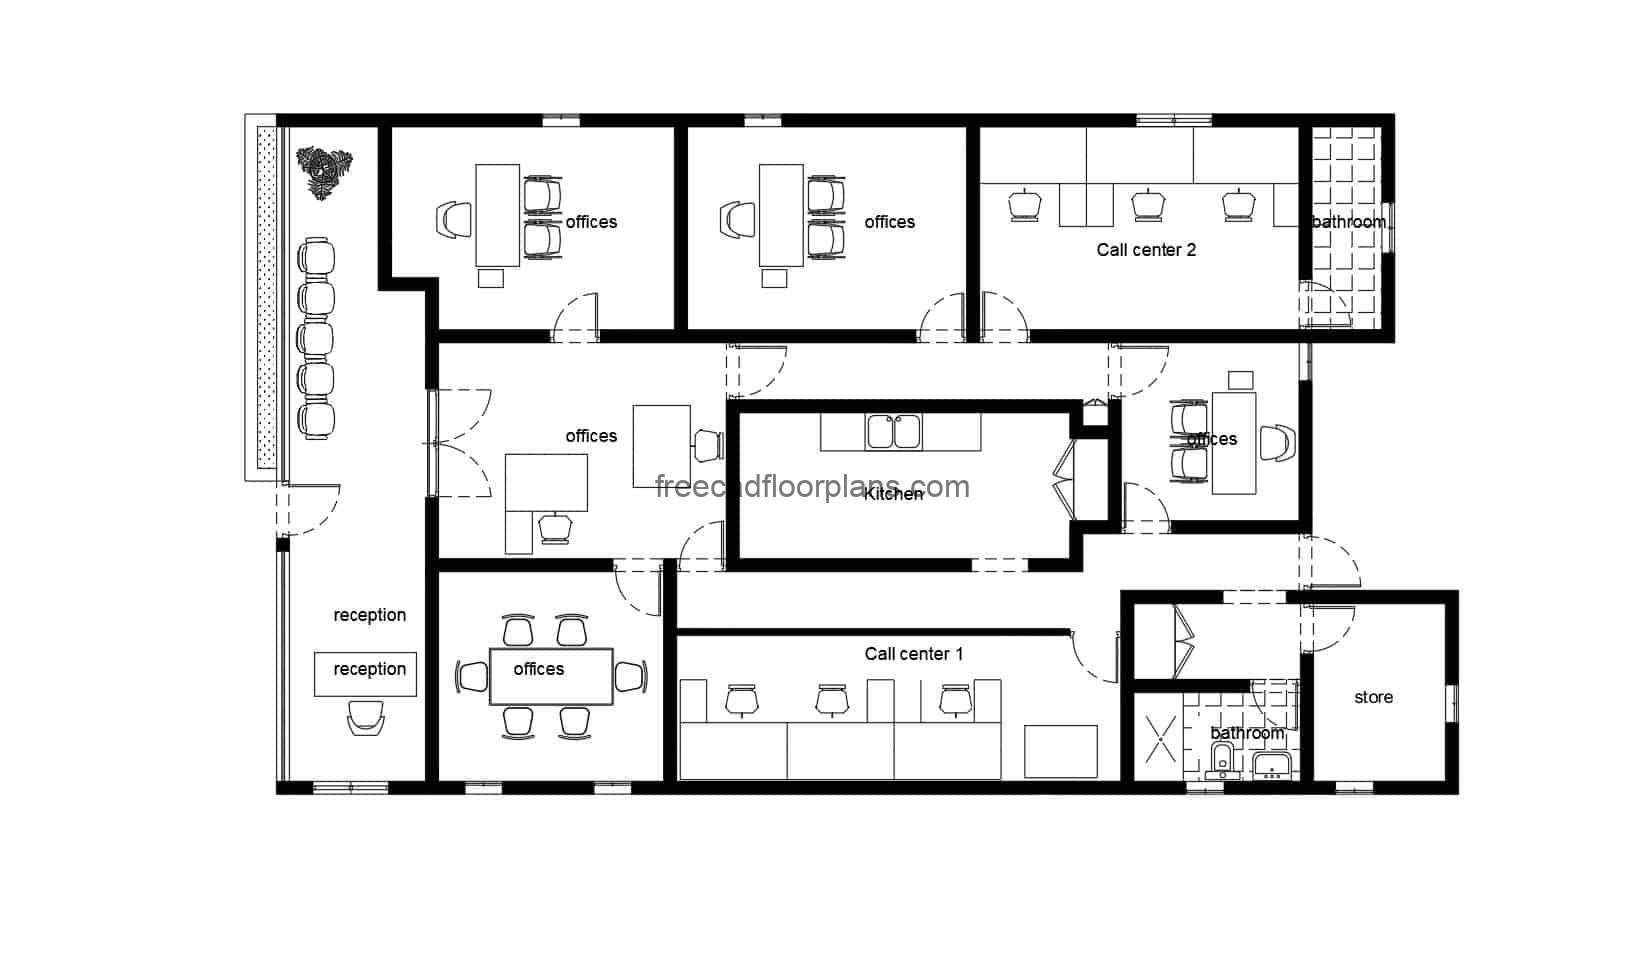 Call Center Offices Autocad Plan 412202 Free Cad Floor Plans